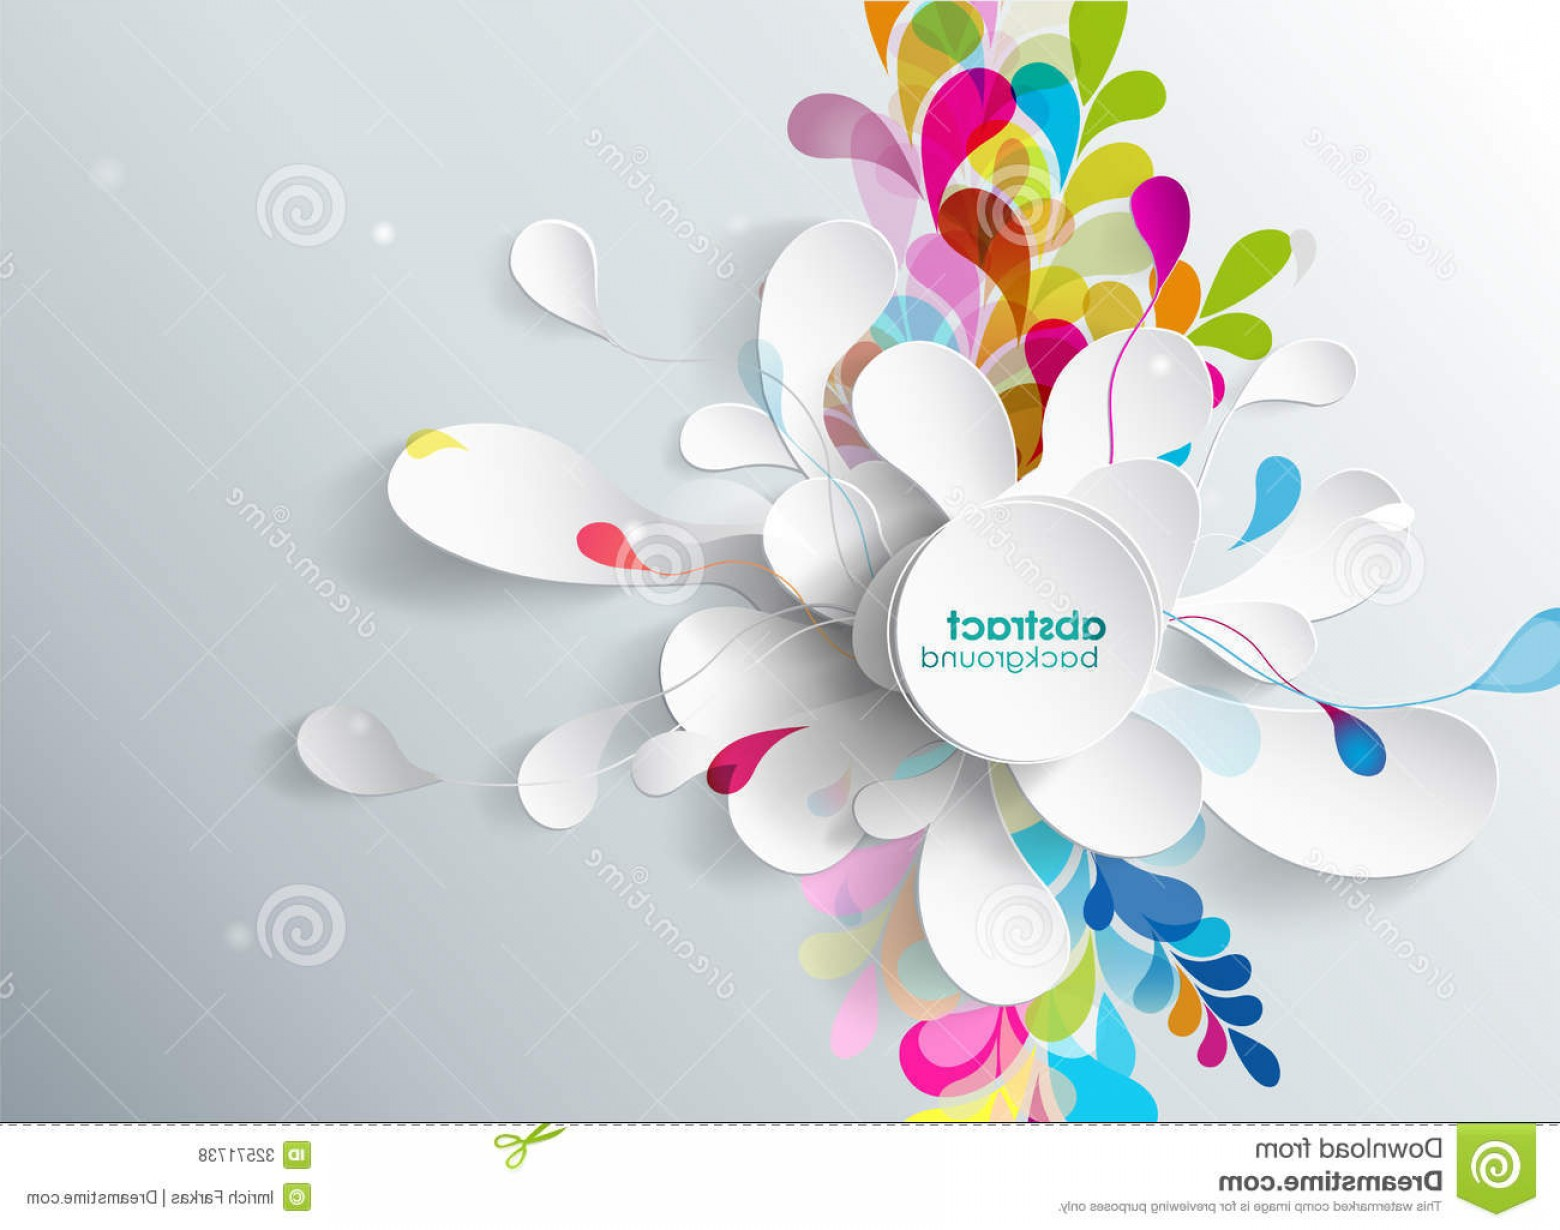 Free Abstract Vector Art: Royalty Free Stock Photos Abstract Background Paper Flower Vector Art Image